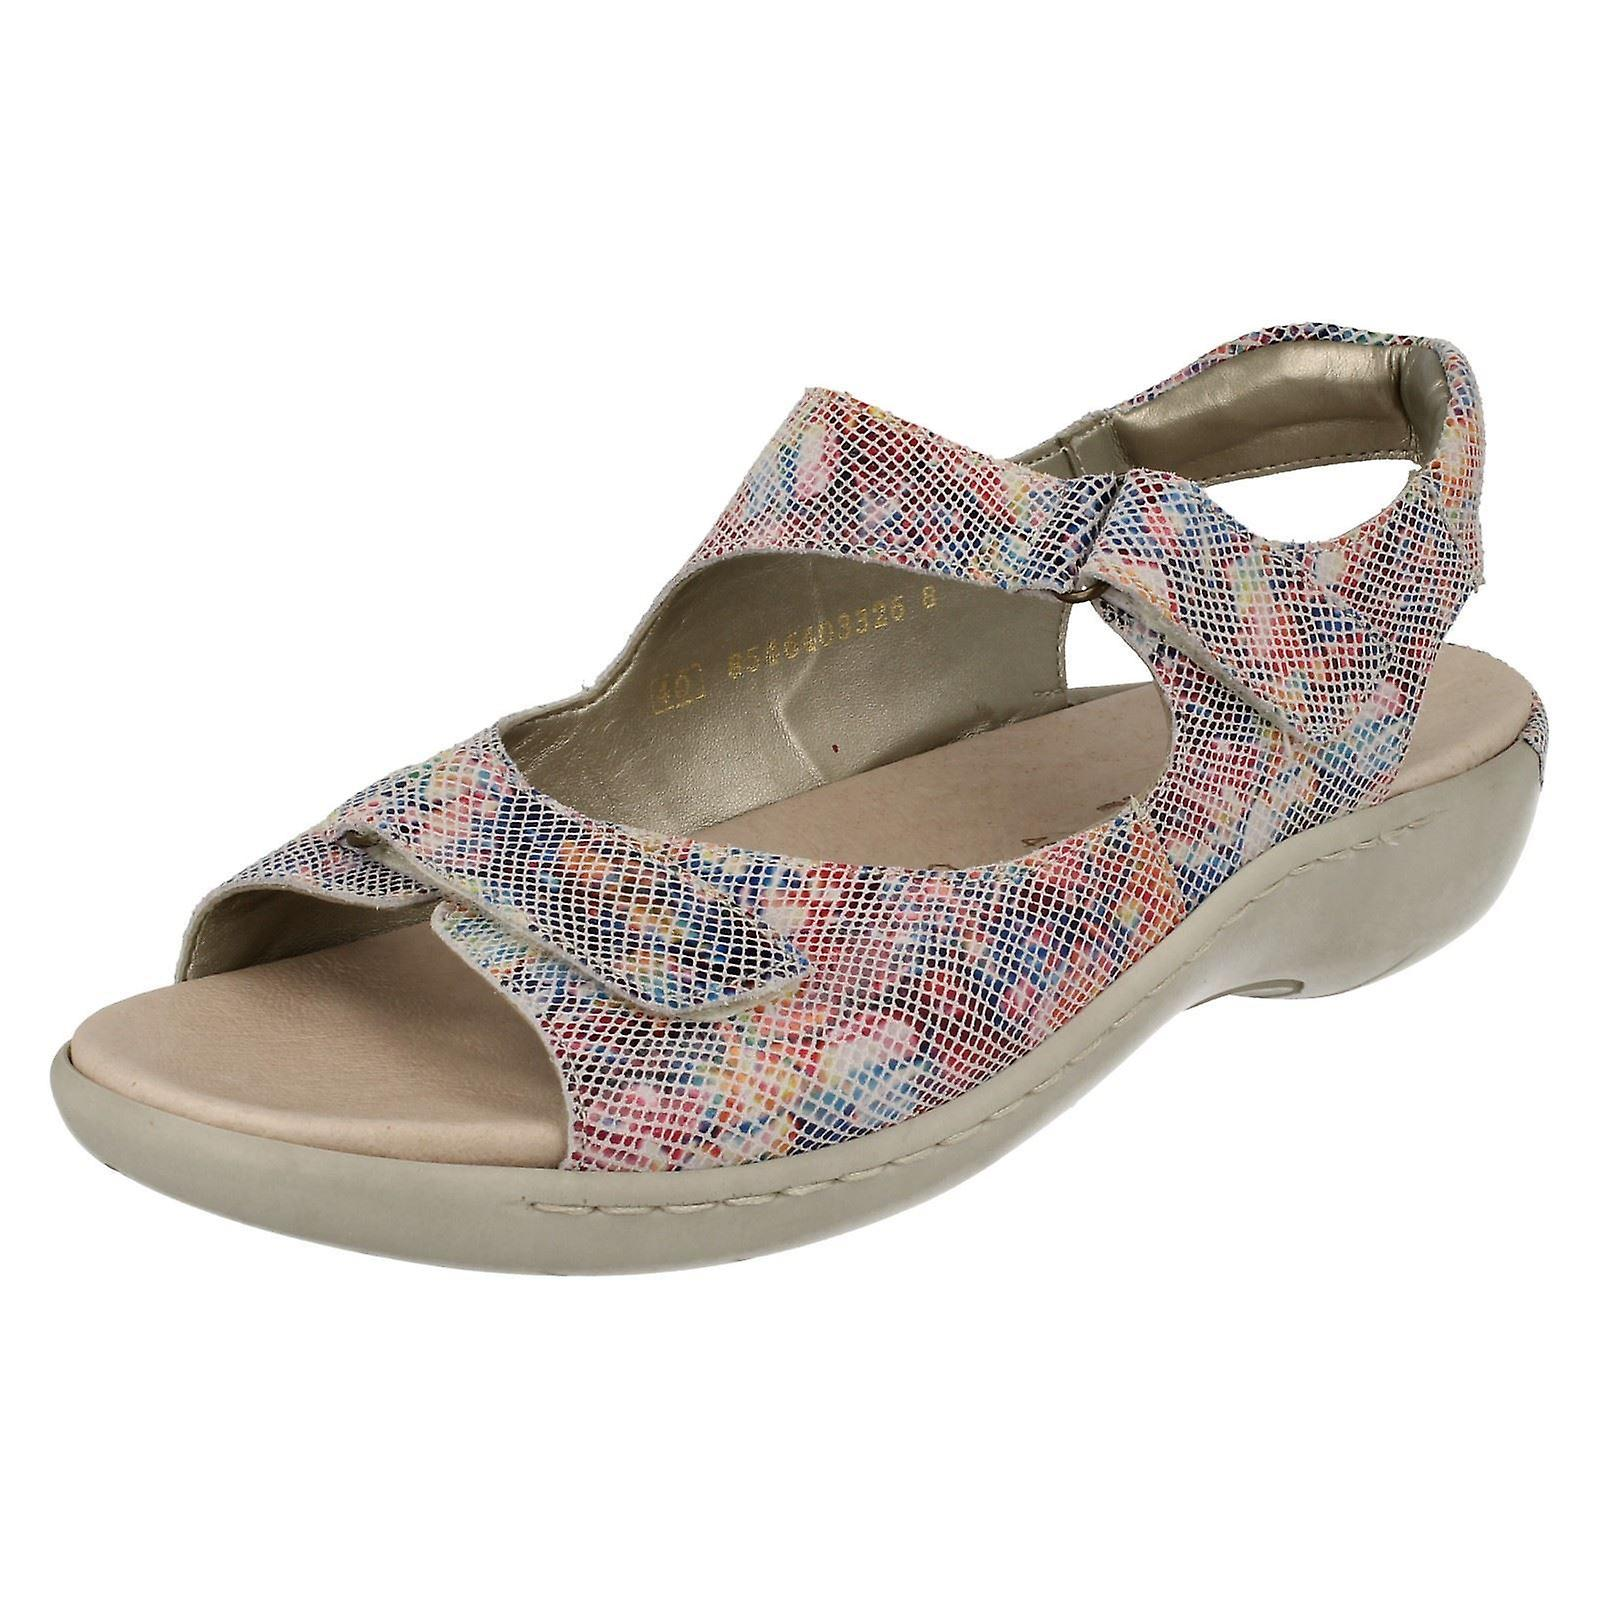 904950a1f99 Ladies Remonte Sandals R8565 Multi Size UK 3.5